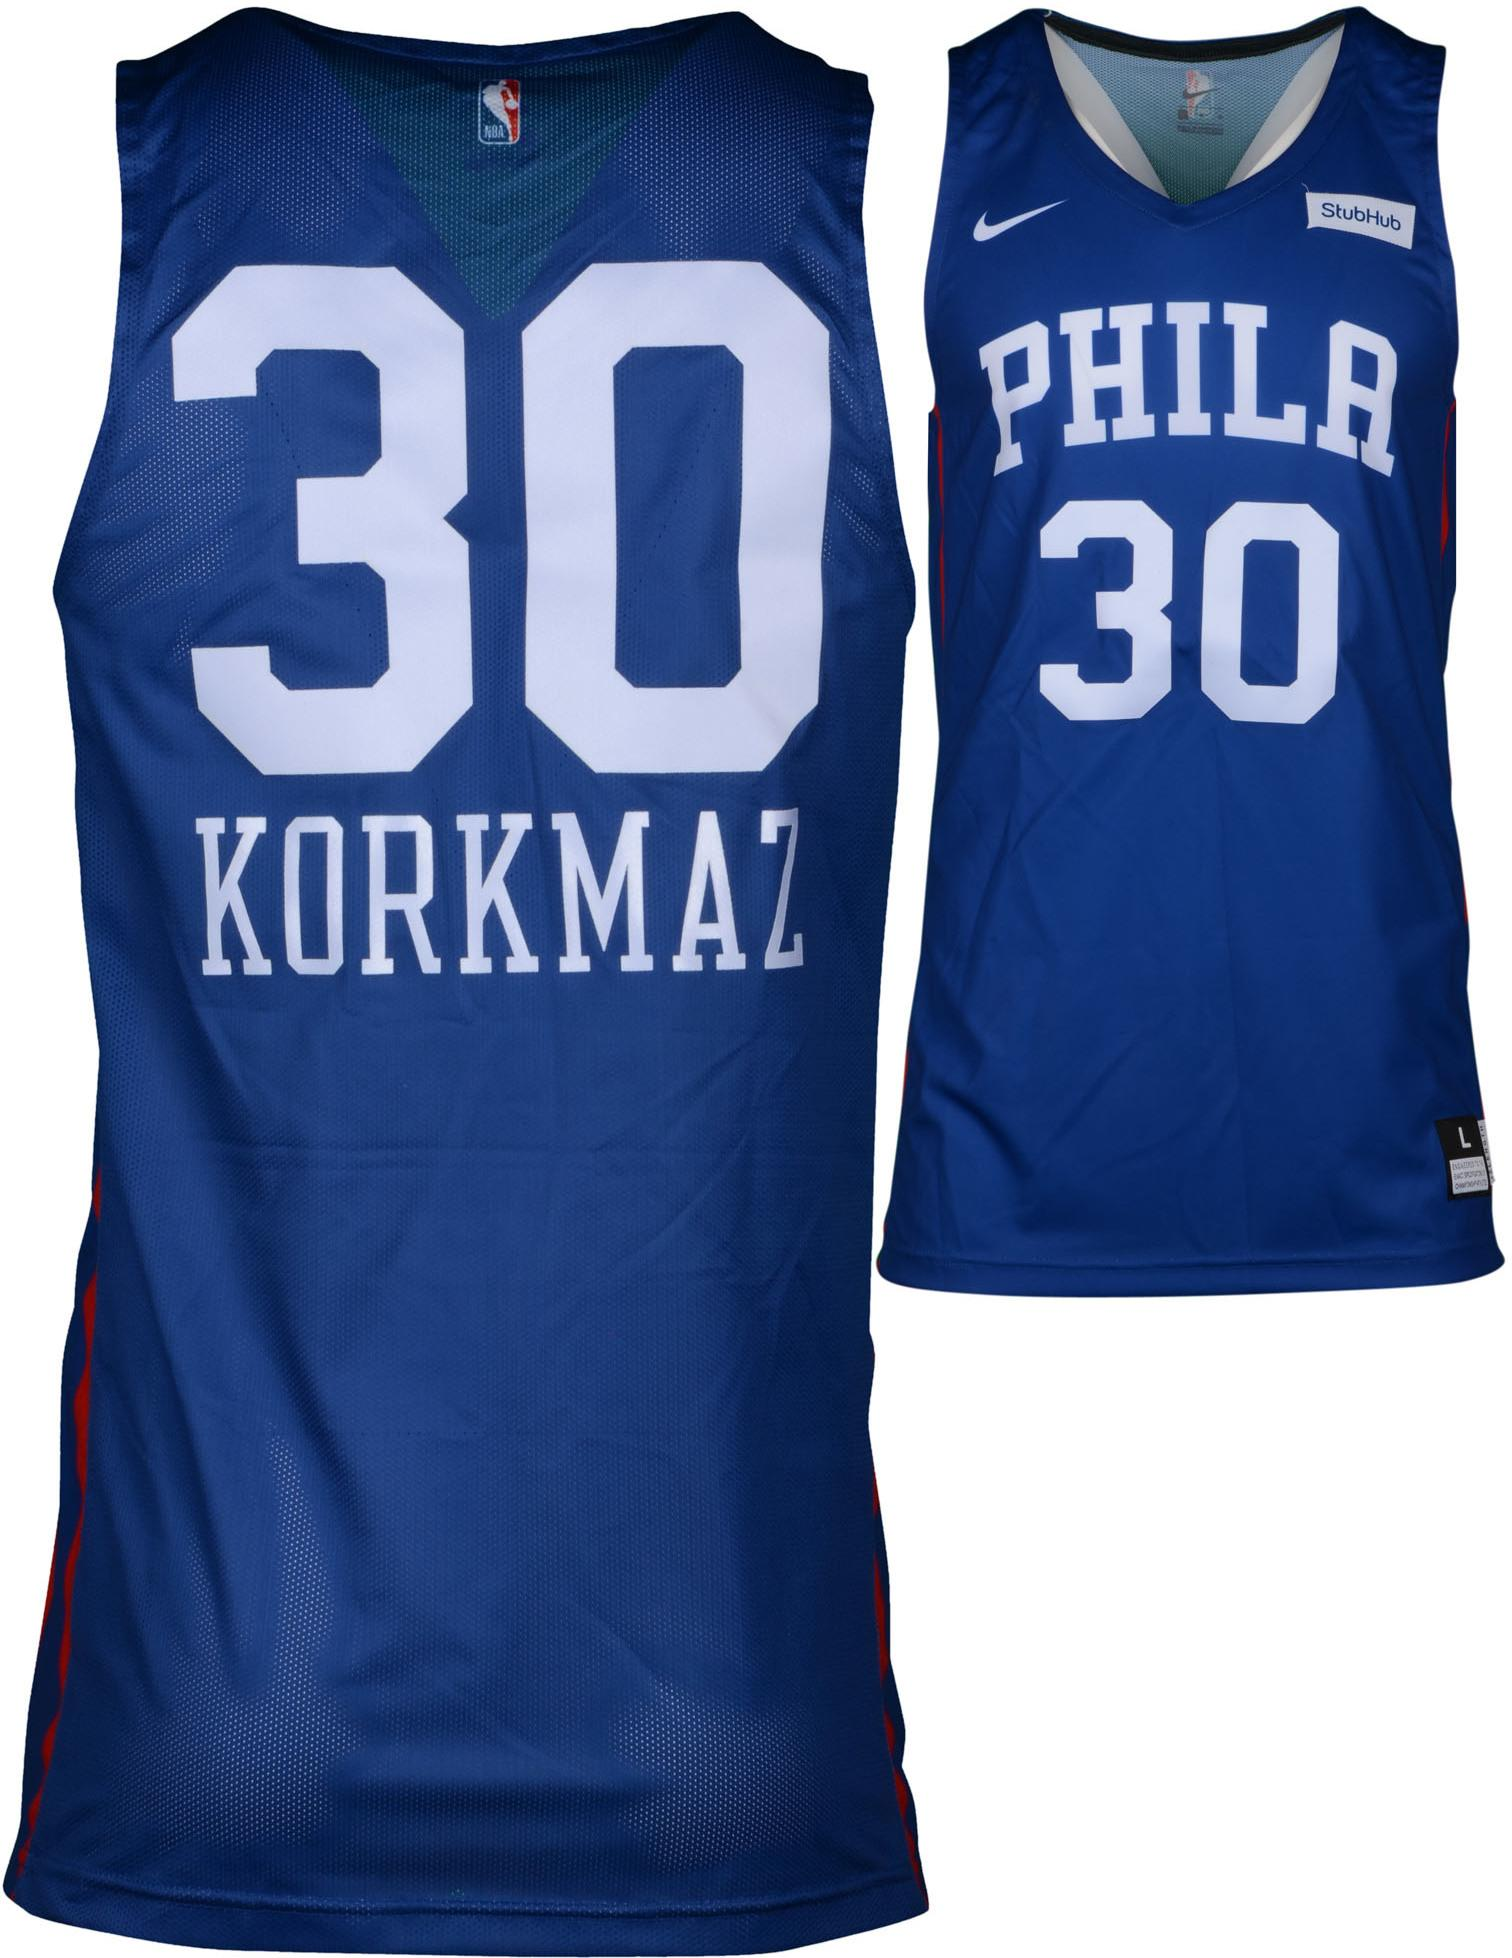 finest selection 691de 11f8f Furkan Korkmaz Philadelphia 76ers Game-Used #30 Blue Jersey from the 2018  Summer League - Size L+2 - Fanatics Authentic Certified